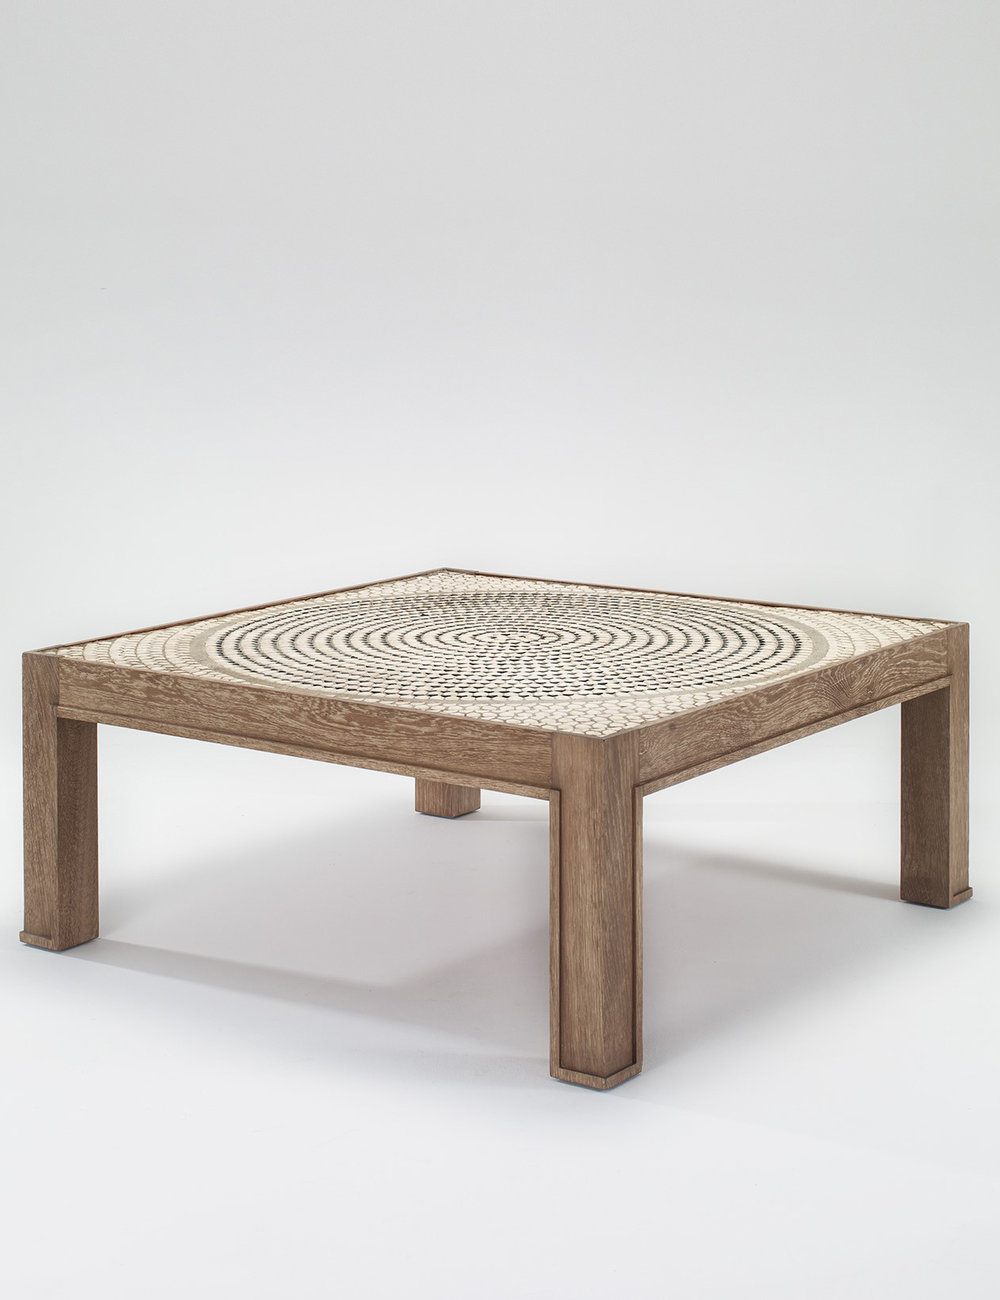 Coffee table, Jacques Adnet and Jacques Lenoble, ca 1950 ⓒ Galerie Eric Philippe Oak and ceramic tiles; size 109 x 109 x 45.5 cm